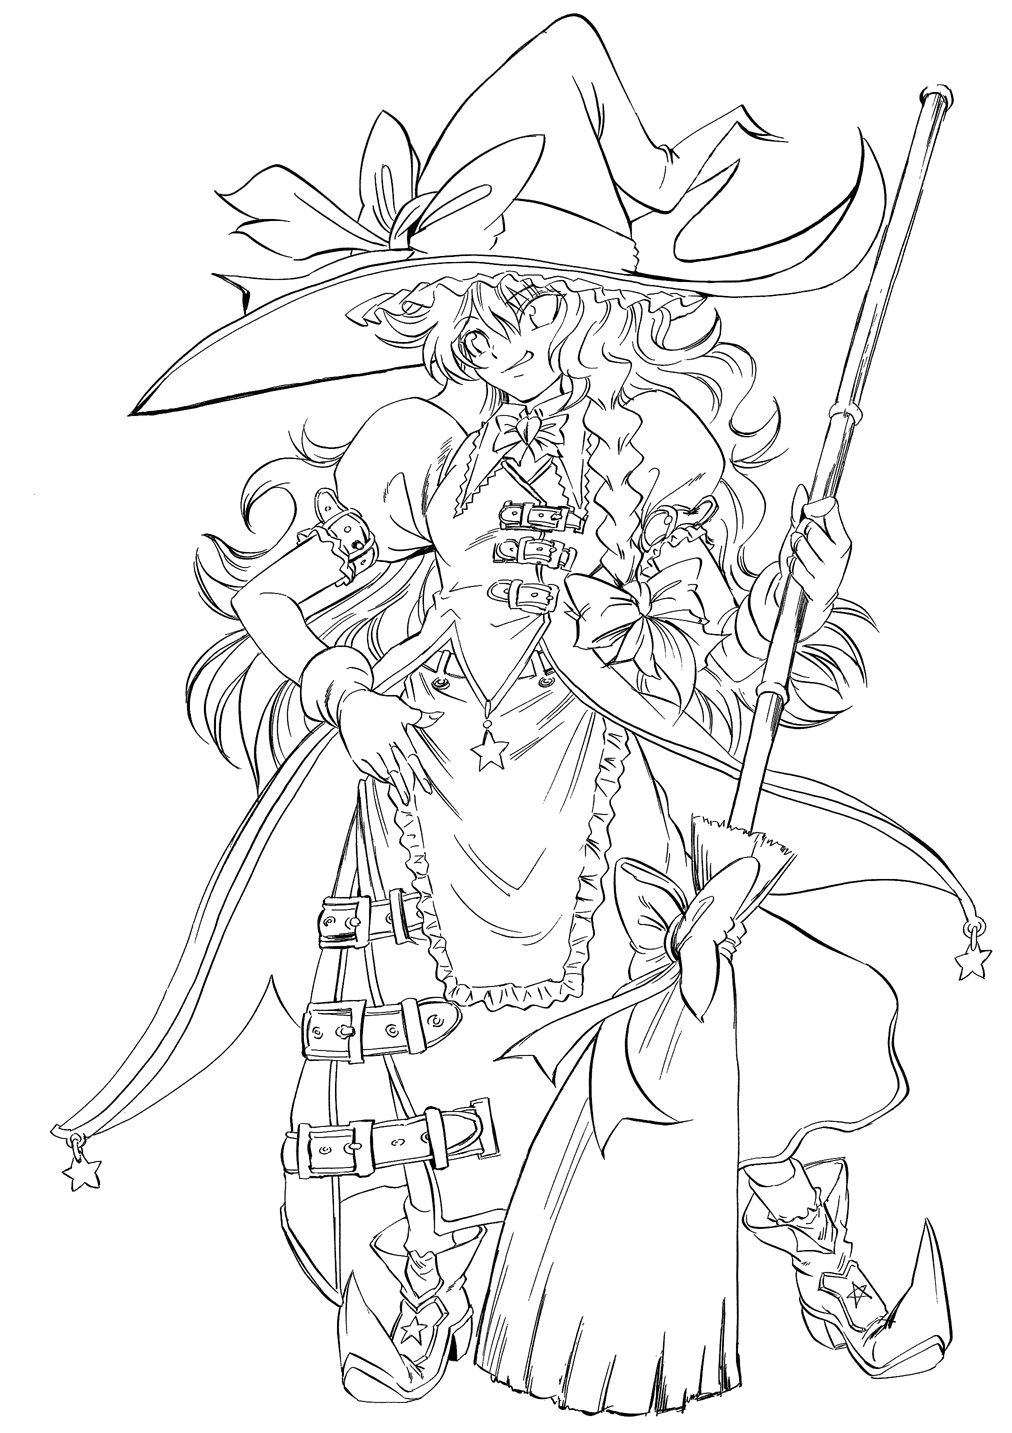 40+ Printable anime coloring sheet ideas in 2021